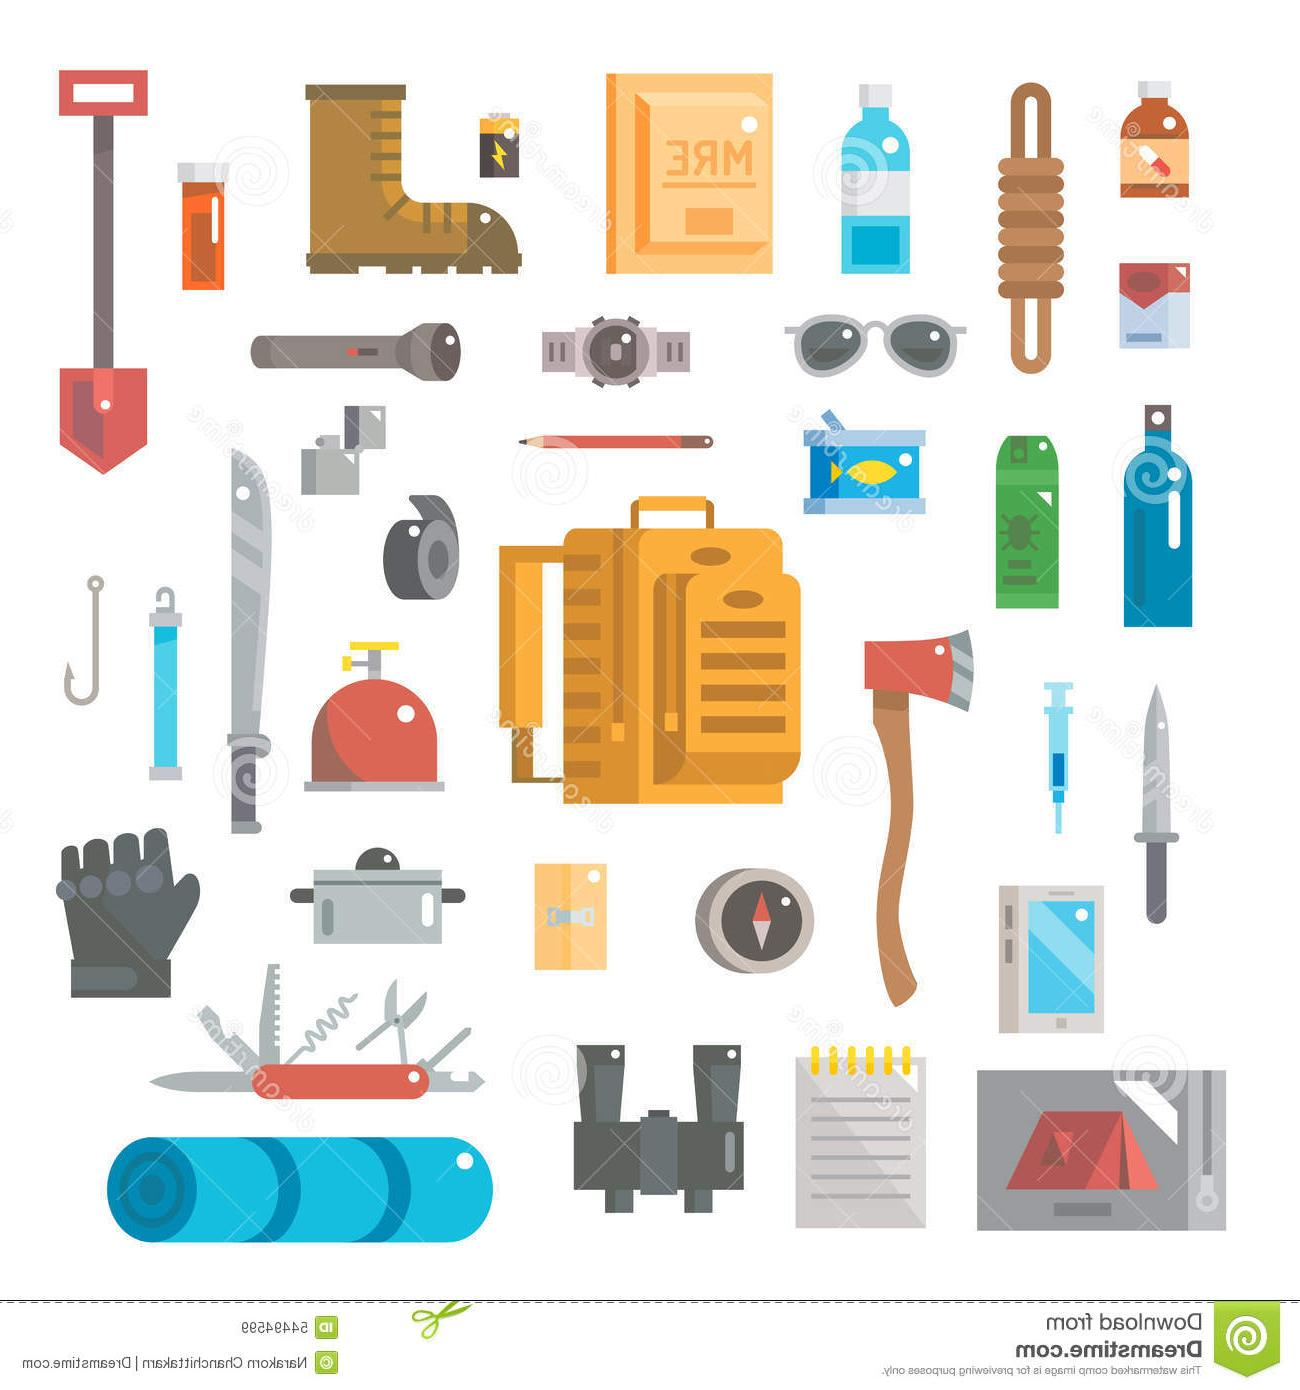 Survival items clipart image download HD Survival Gear Vector Images » Free Vector Art, Images ... image download